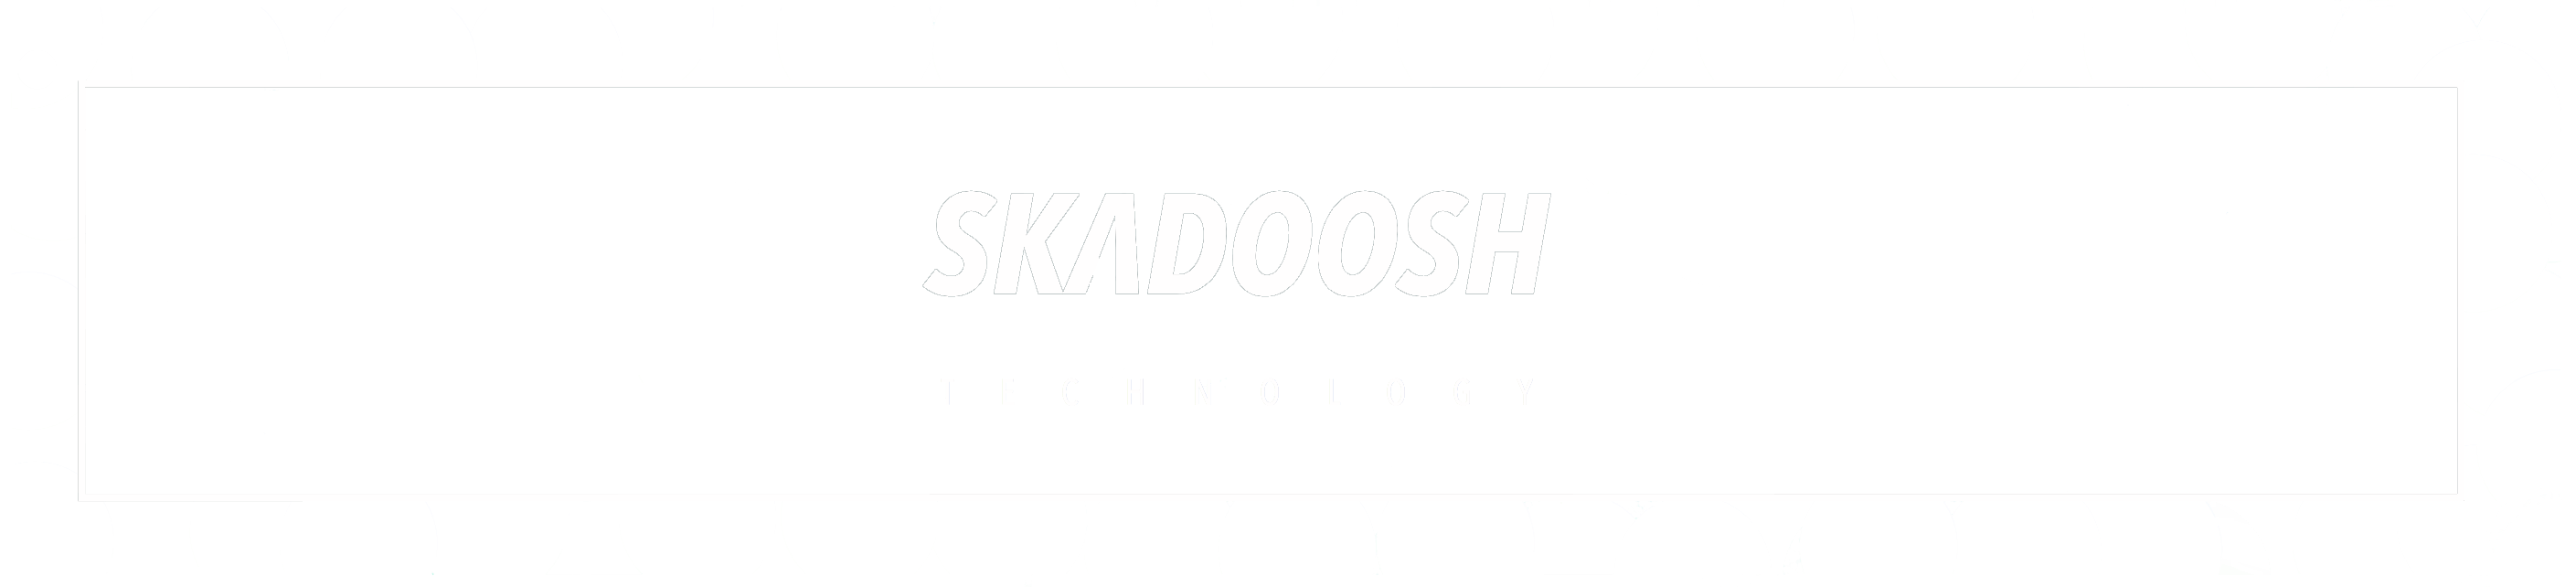 Skadoosh Ltd.